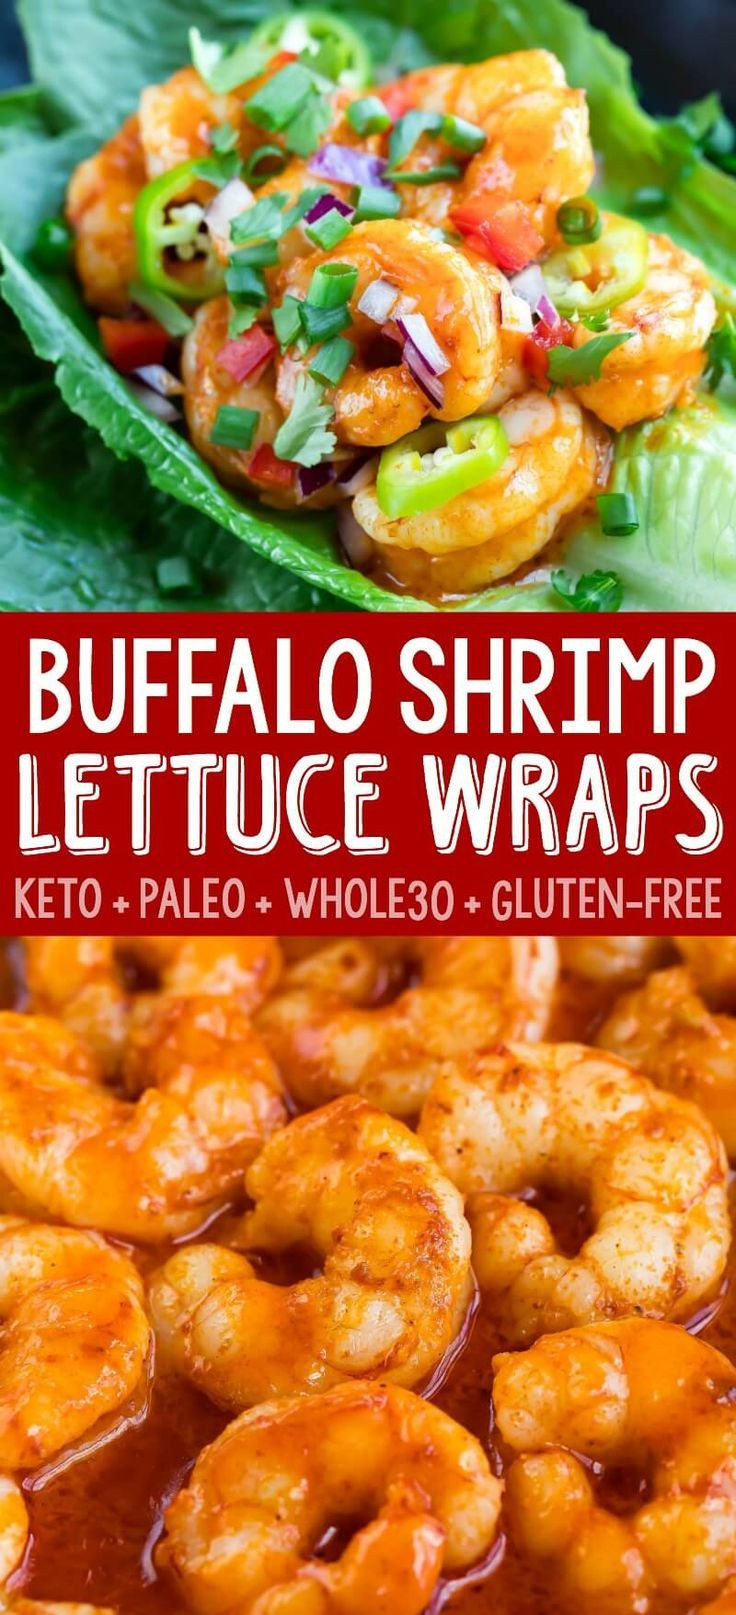 Buffalo Shrimp Keto  Buffalo Shrimp Lettuce Wrap Tacos Recipe